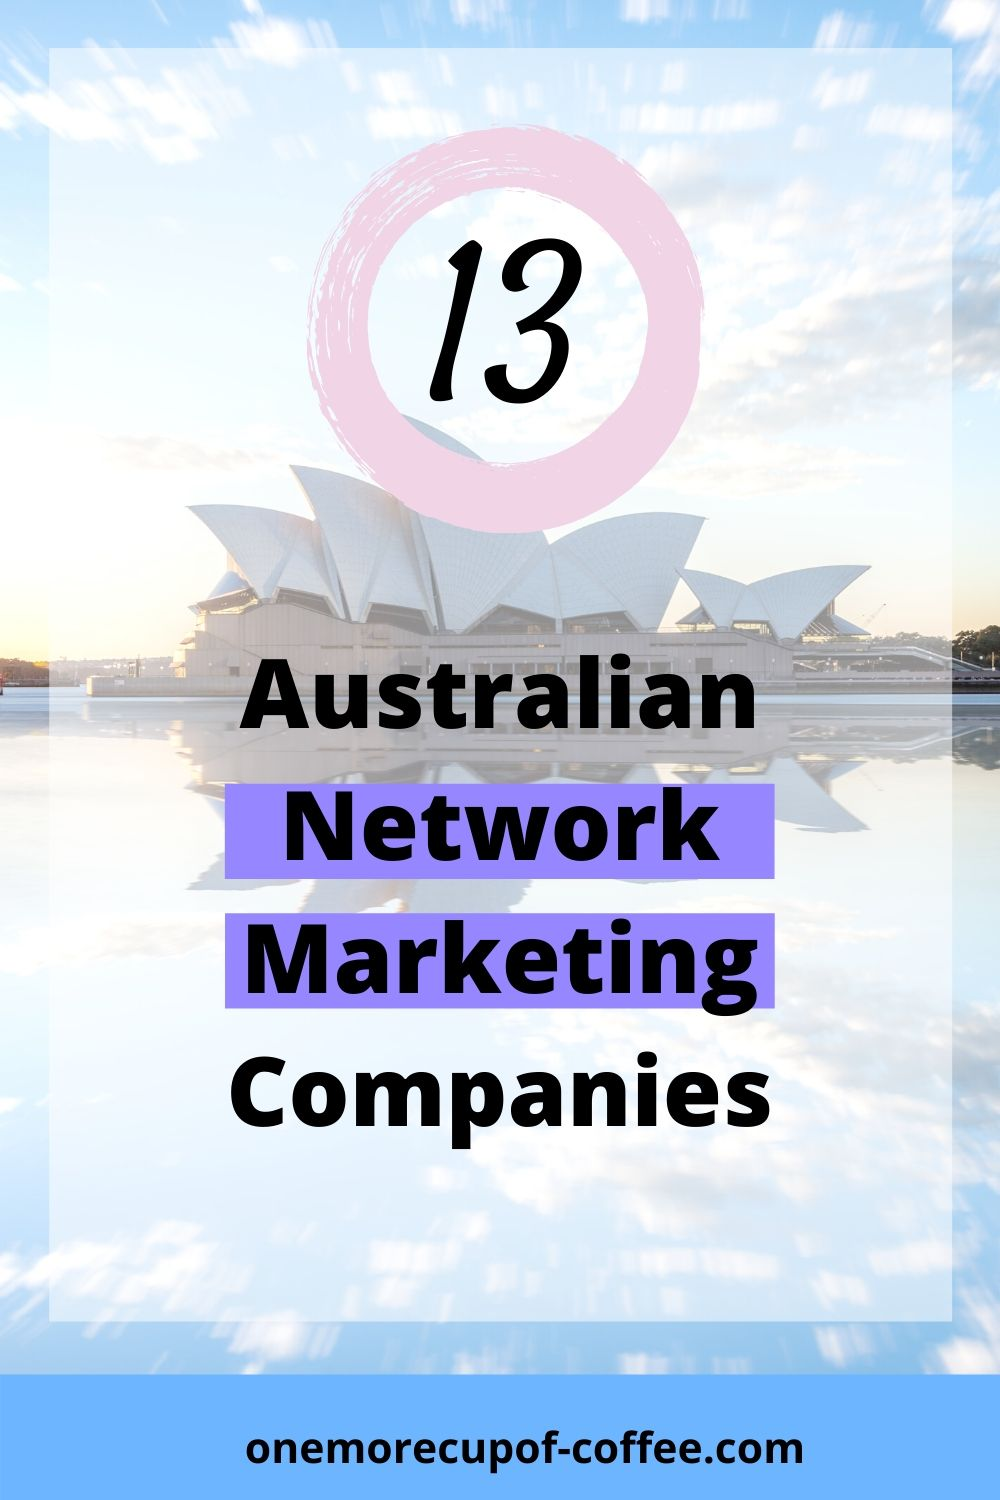 Image showing opera house to represent Australian Network Marketing Companies